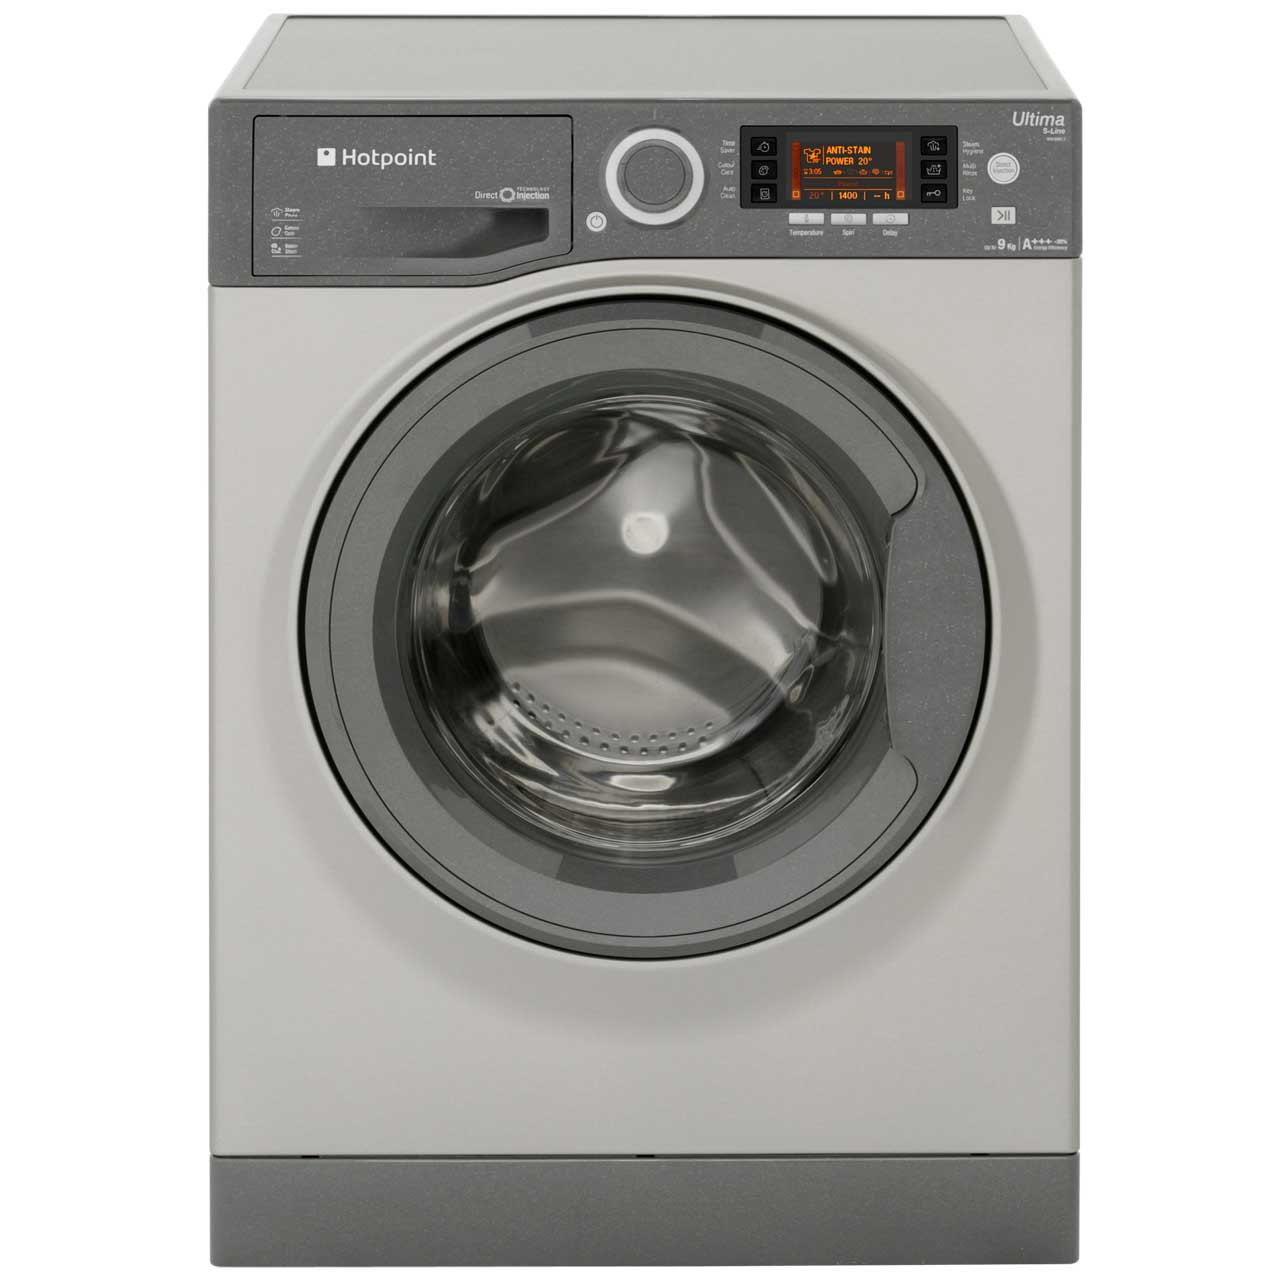 Hotpoint Ultima S-Line RPD9467JGG 9Kg Washing Machine with 1400 rpm - Graphite